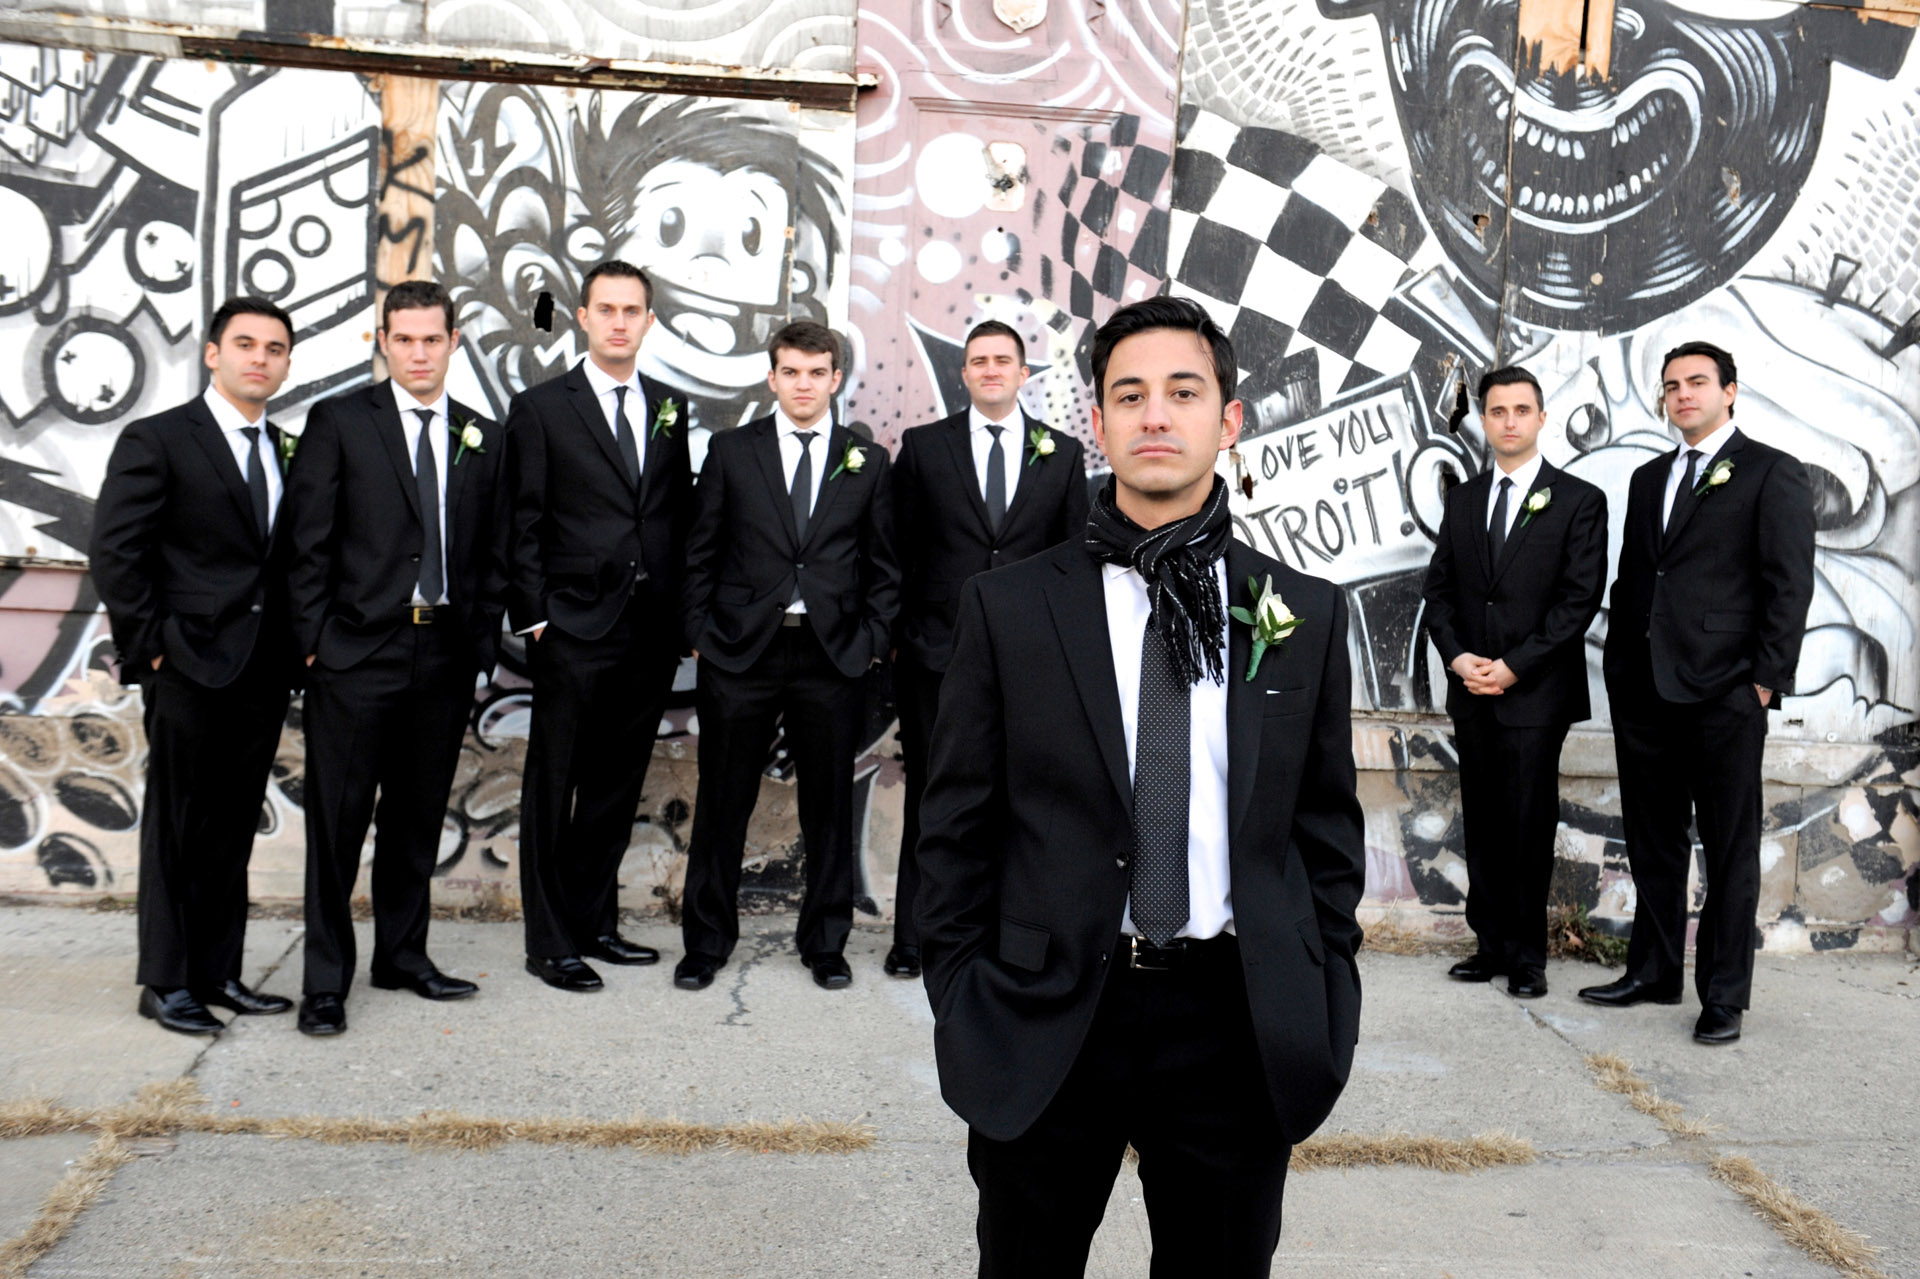 The Historic church Sweetest Heart of Mary and the Dearborn Inn of Detroit's historic church in Detroit and Dearborn, Michigan wedding photographer's  photo of the groom and his groomsmen near the Detroit's historic train station for wedding photos in Detroit, Michigan with local graffiti art.